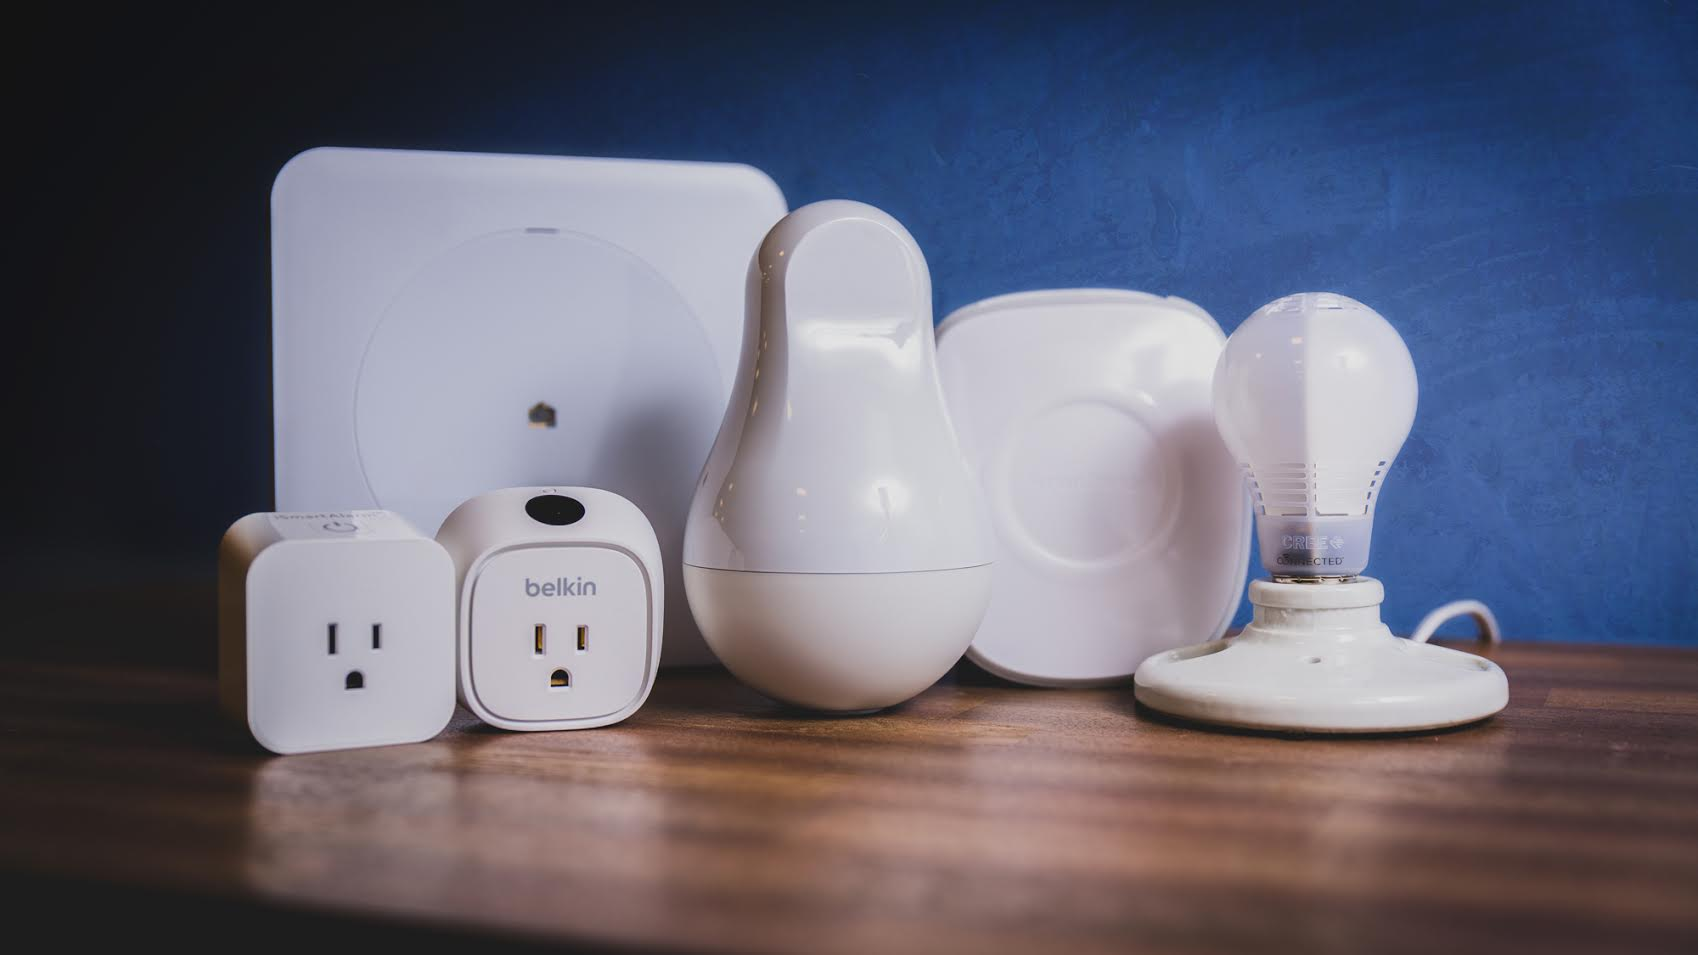 smart-home-automation-buying-guide-promo.jpg